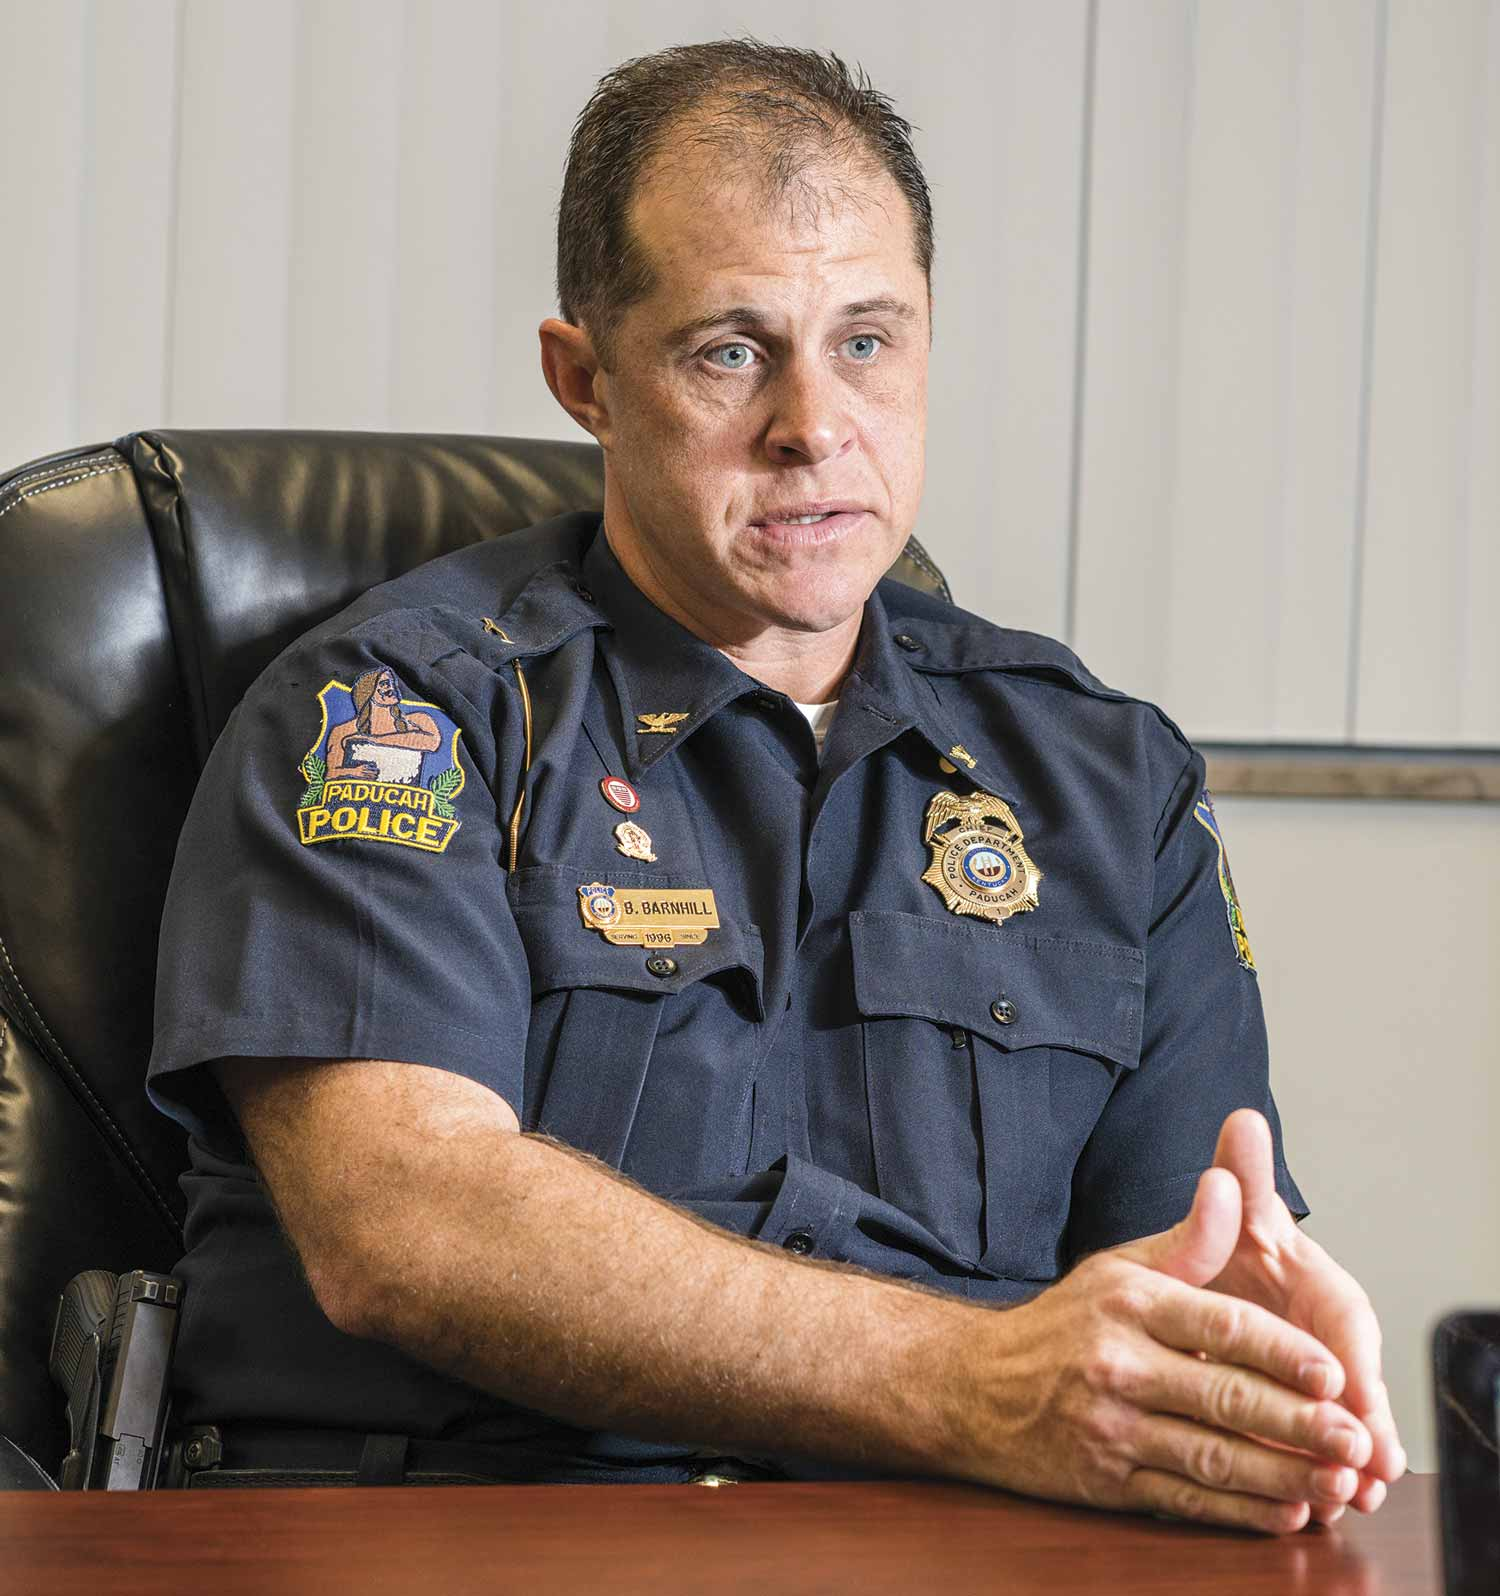 Paducah Police Chief Brandon Barnhill pushes his department toward positive community understanding and interaction. He hopes the knowledge gained through the agency's new Cultural Leadership Academy will infiltrate the ideas and actions of the entire department over time. (Photo by Jim Robertson)